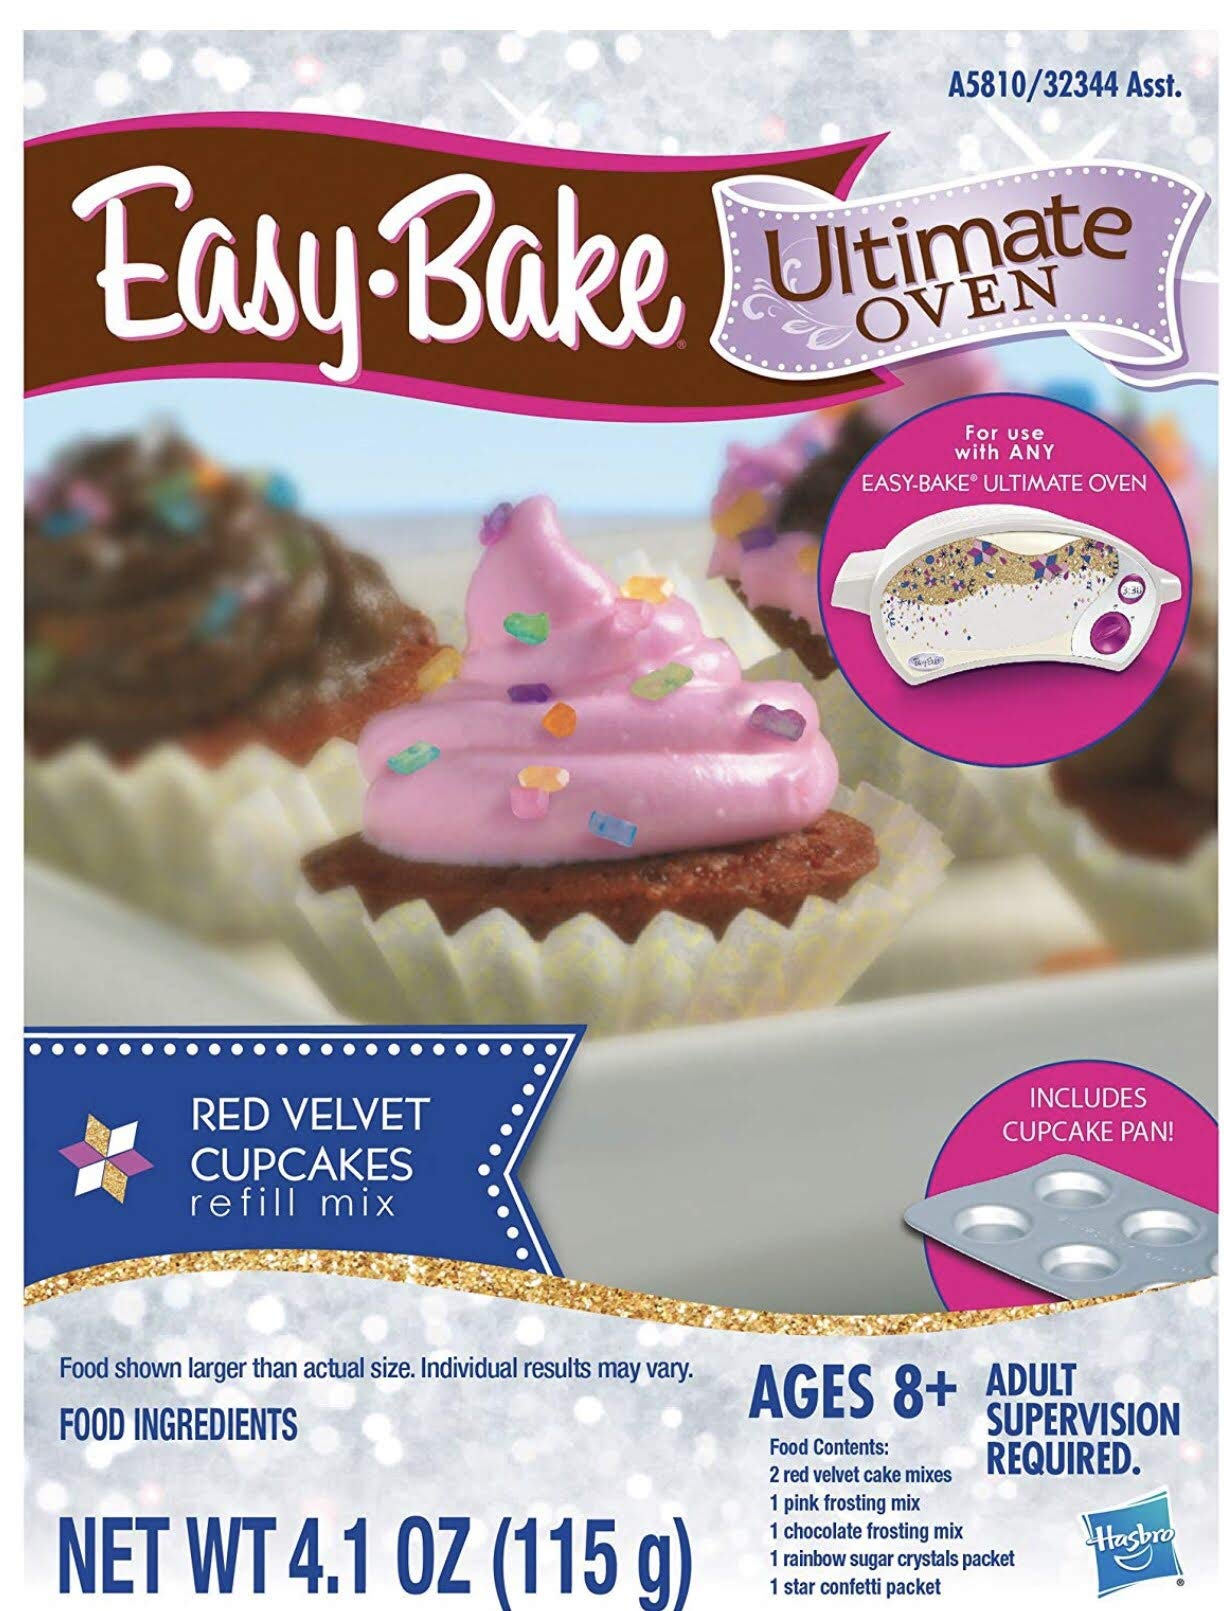 Mixing Bowl and Spoon Green Easy Bake Ultimate Oven Baking Star Edition 2 Sweet Treats Tasty Oven Recipes 2 Oven Refill Mixes 5 Items Total